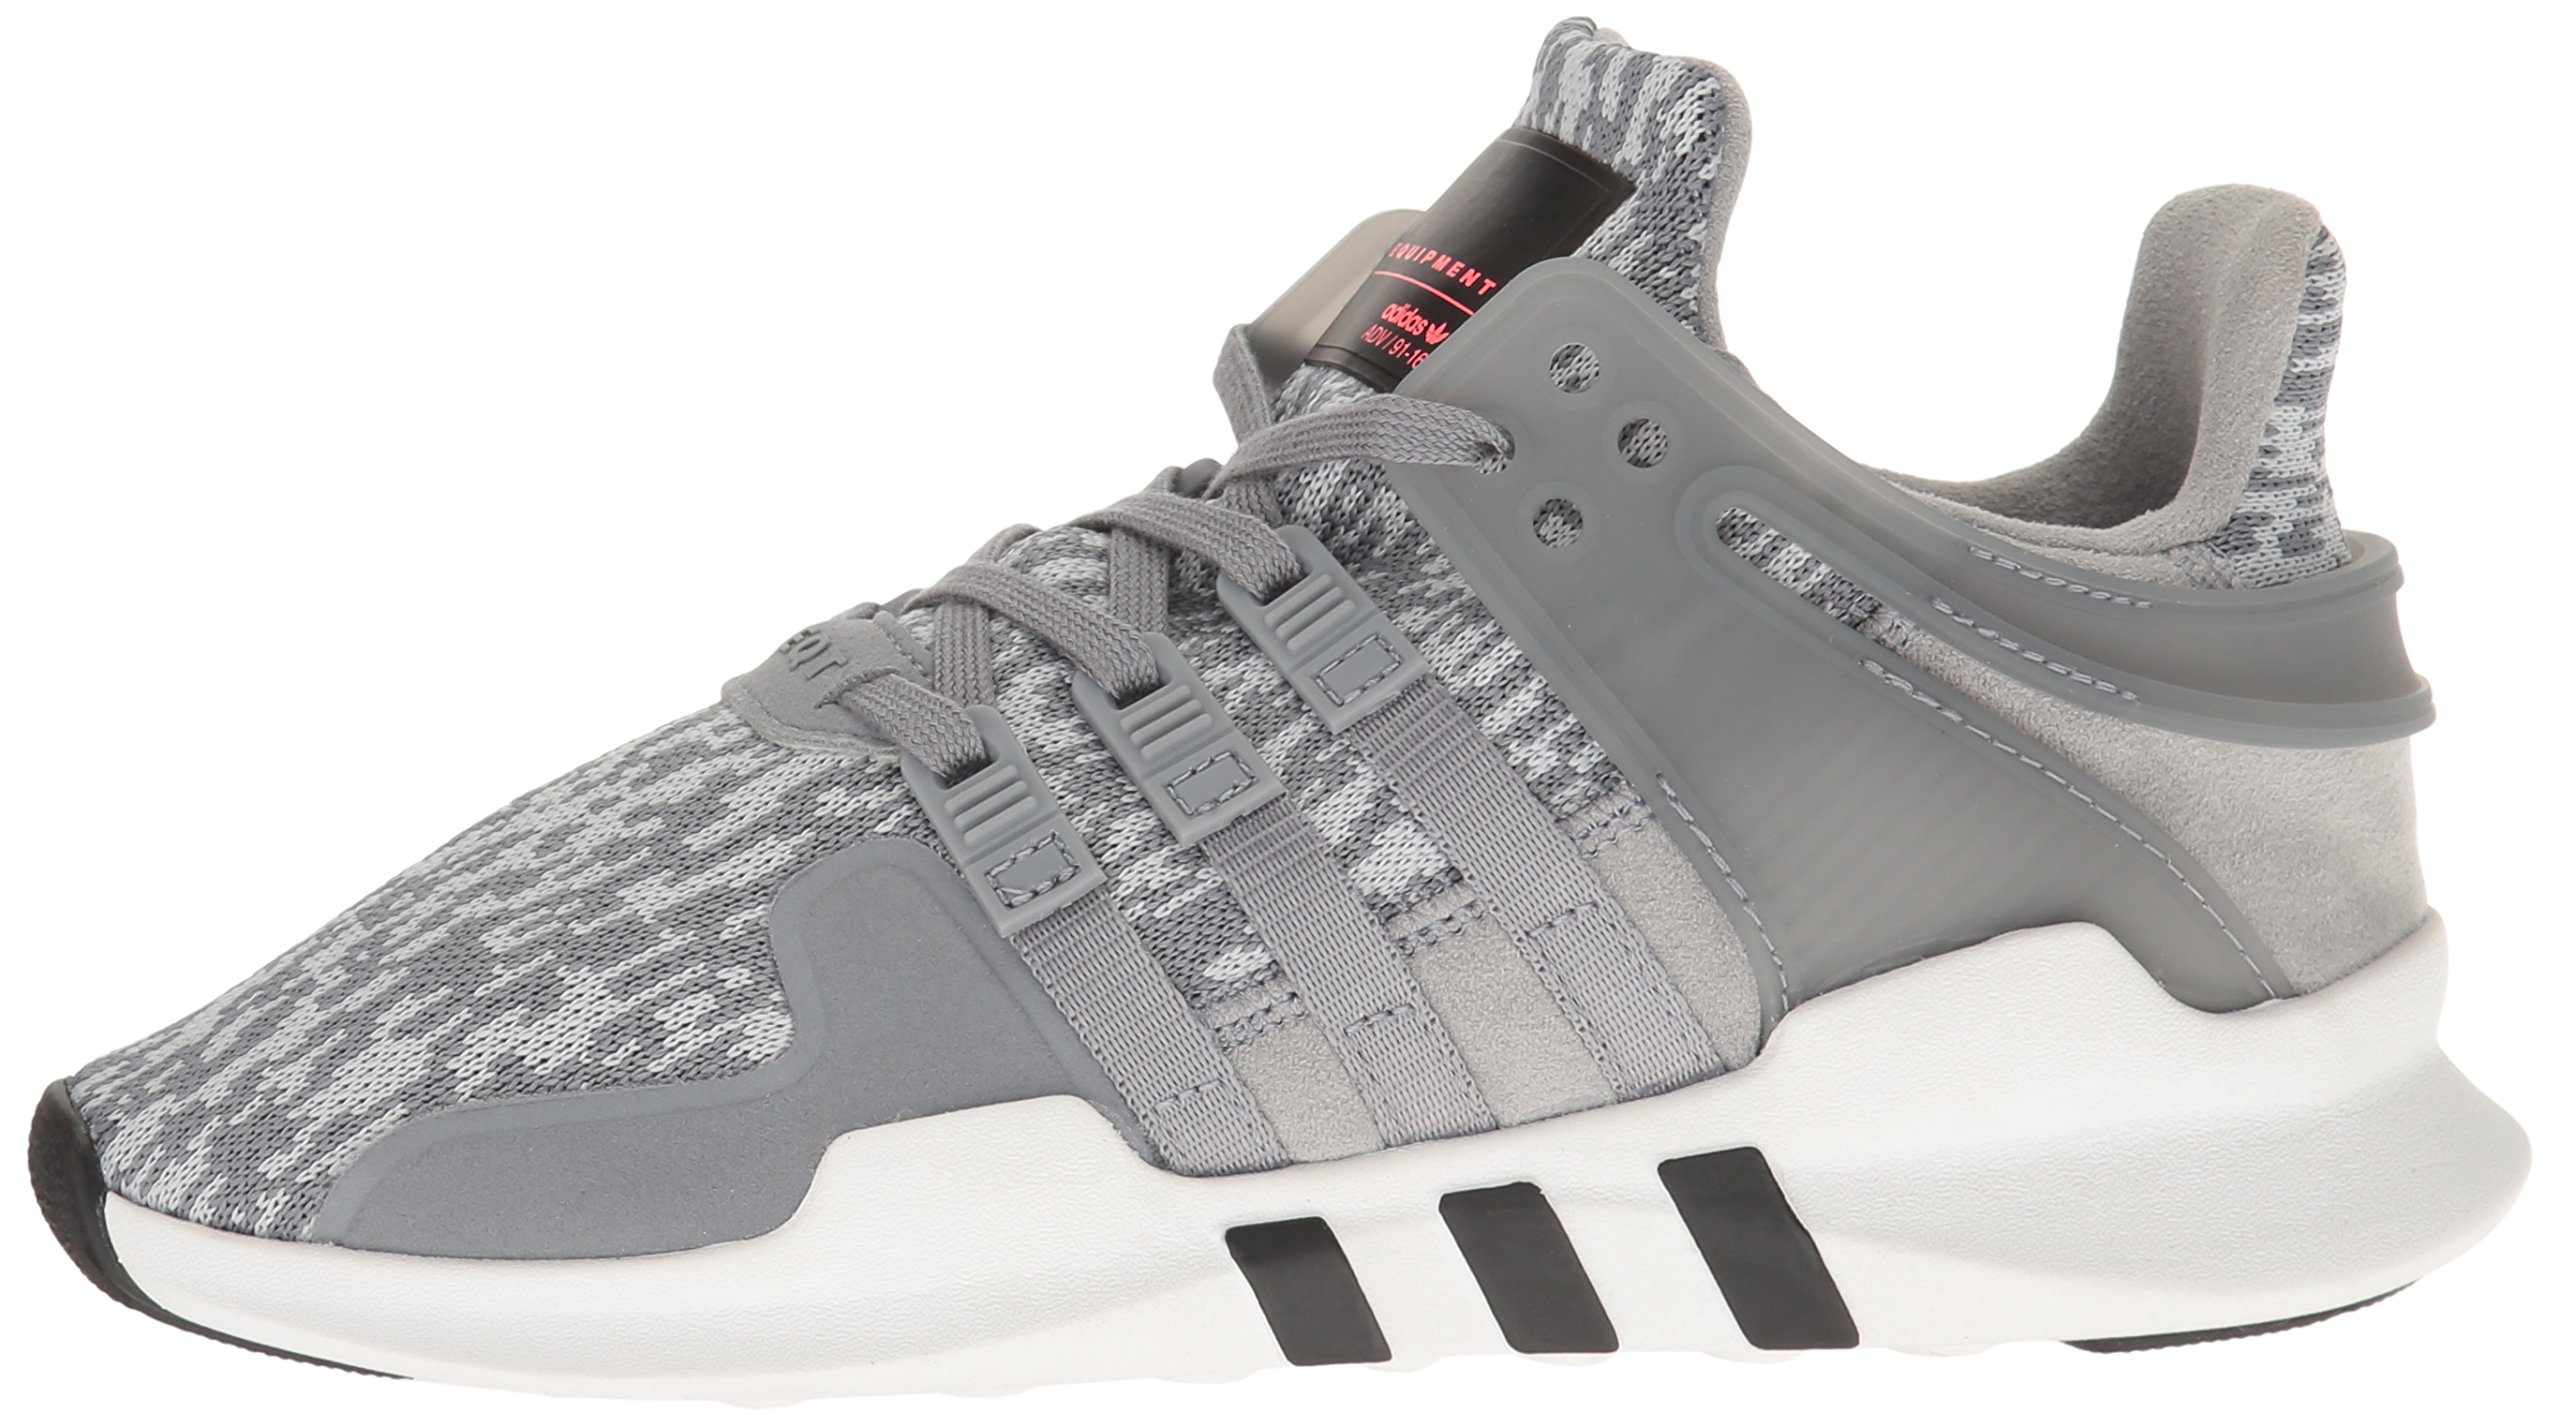 adidas Originals Boys' EQT Support ADV J Running Shoe, Tech Grey/White, 5.5 M US Big Kid by adidas Originals (Image #5)